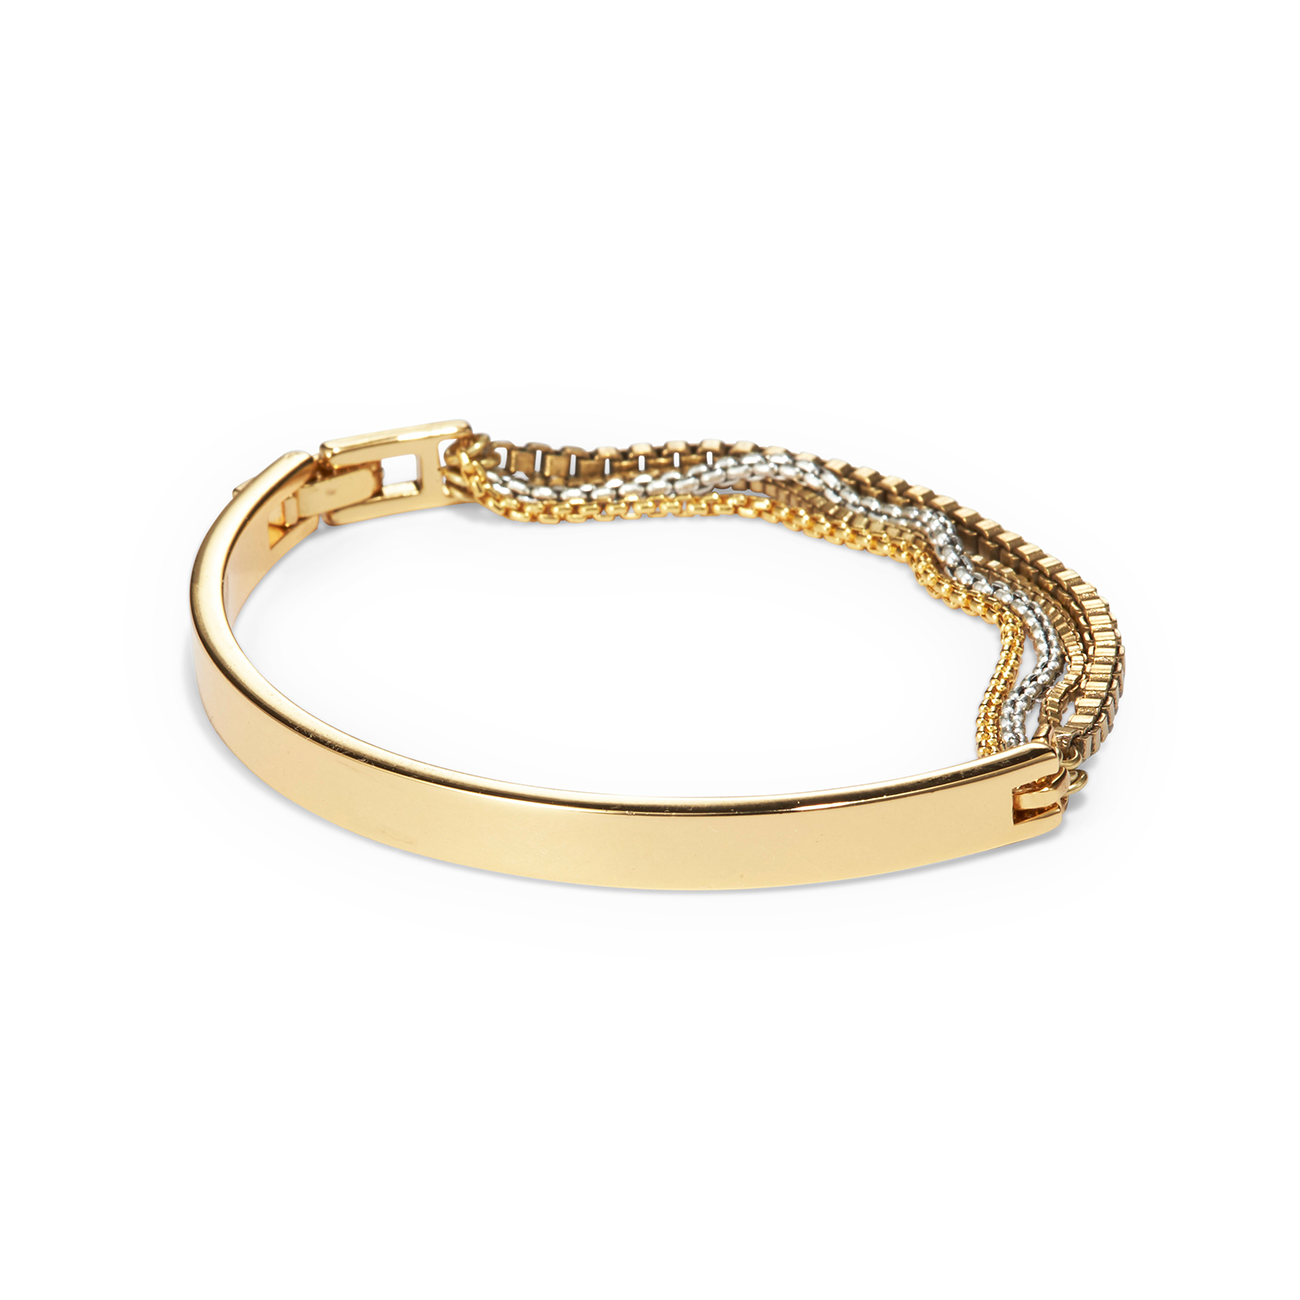 Gold mixed chain and metal bracelet by Jenny Bird with fold-over clasp